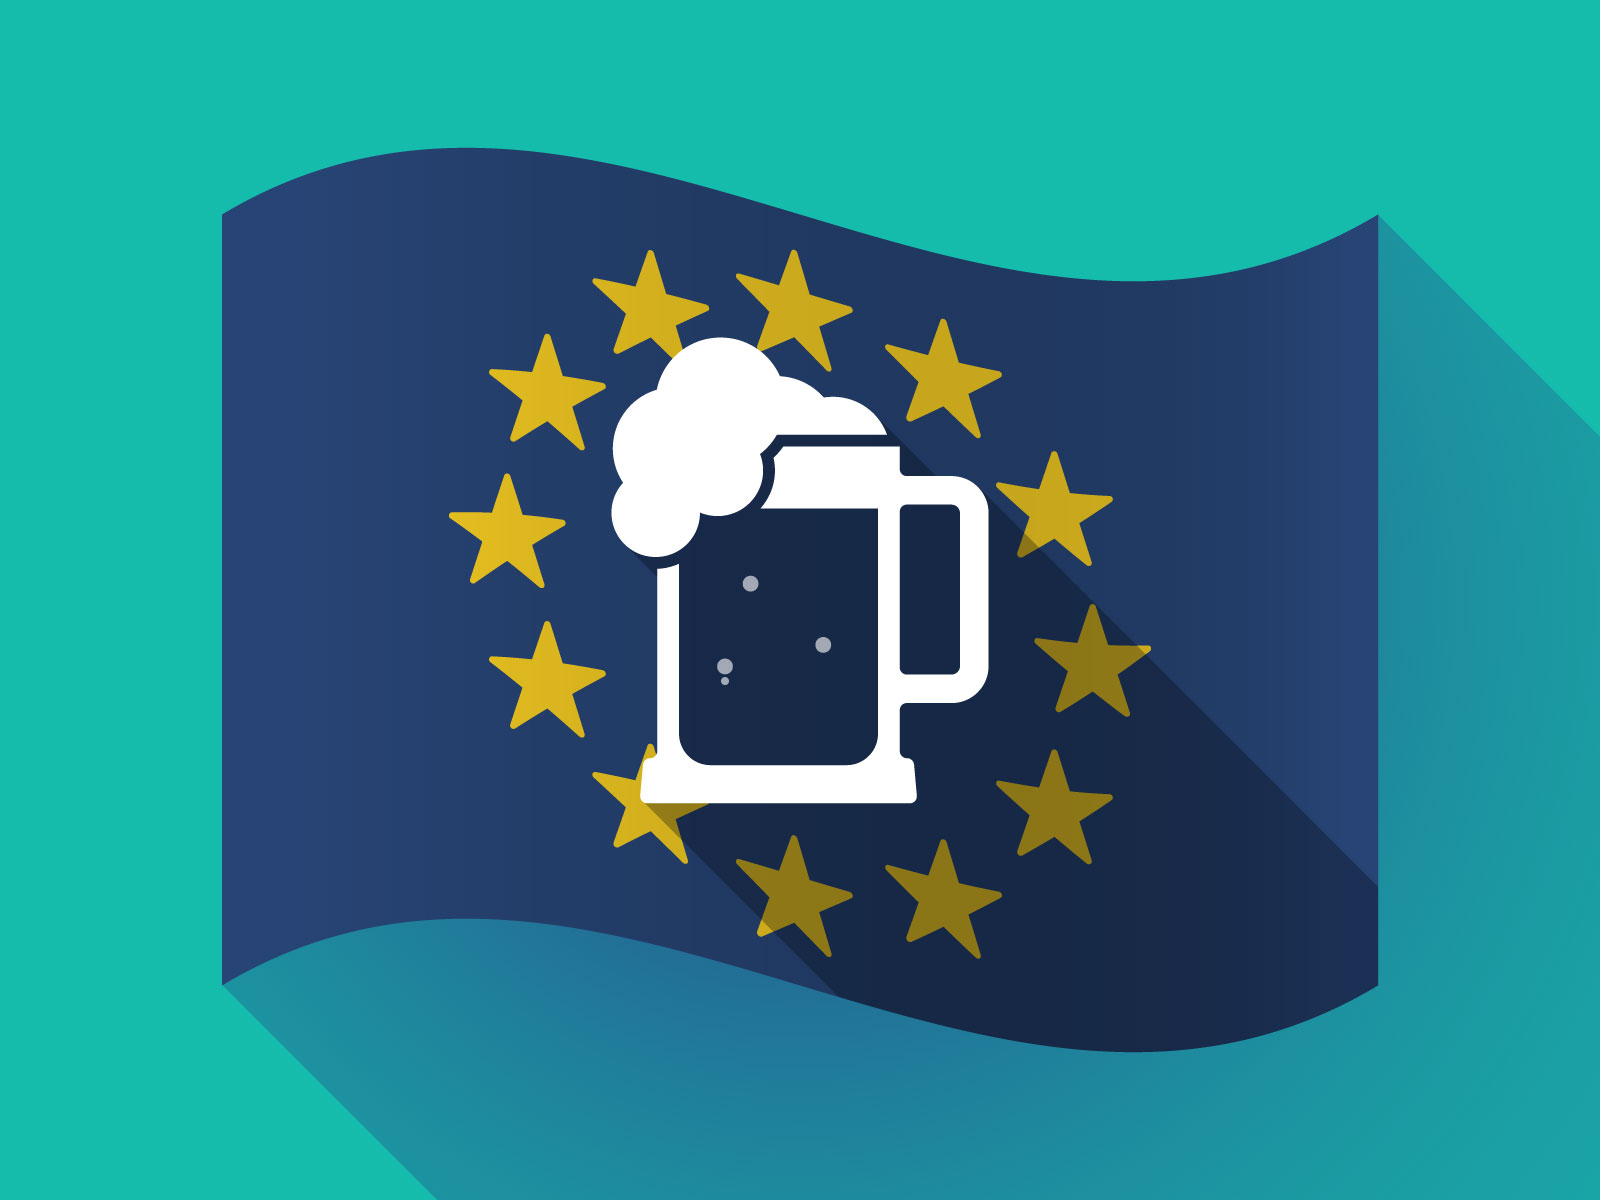 Europe's Craft Beer Associations Formed Their Own Union